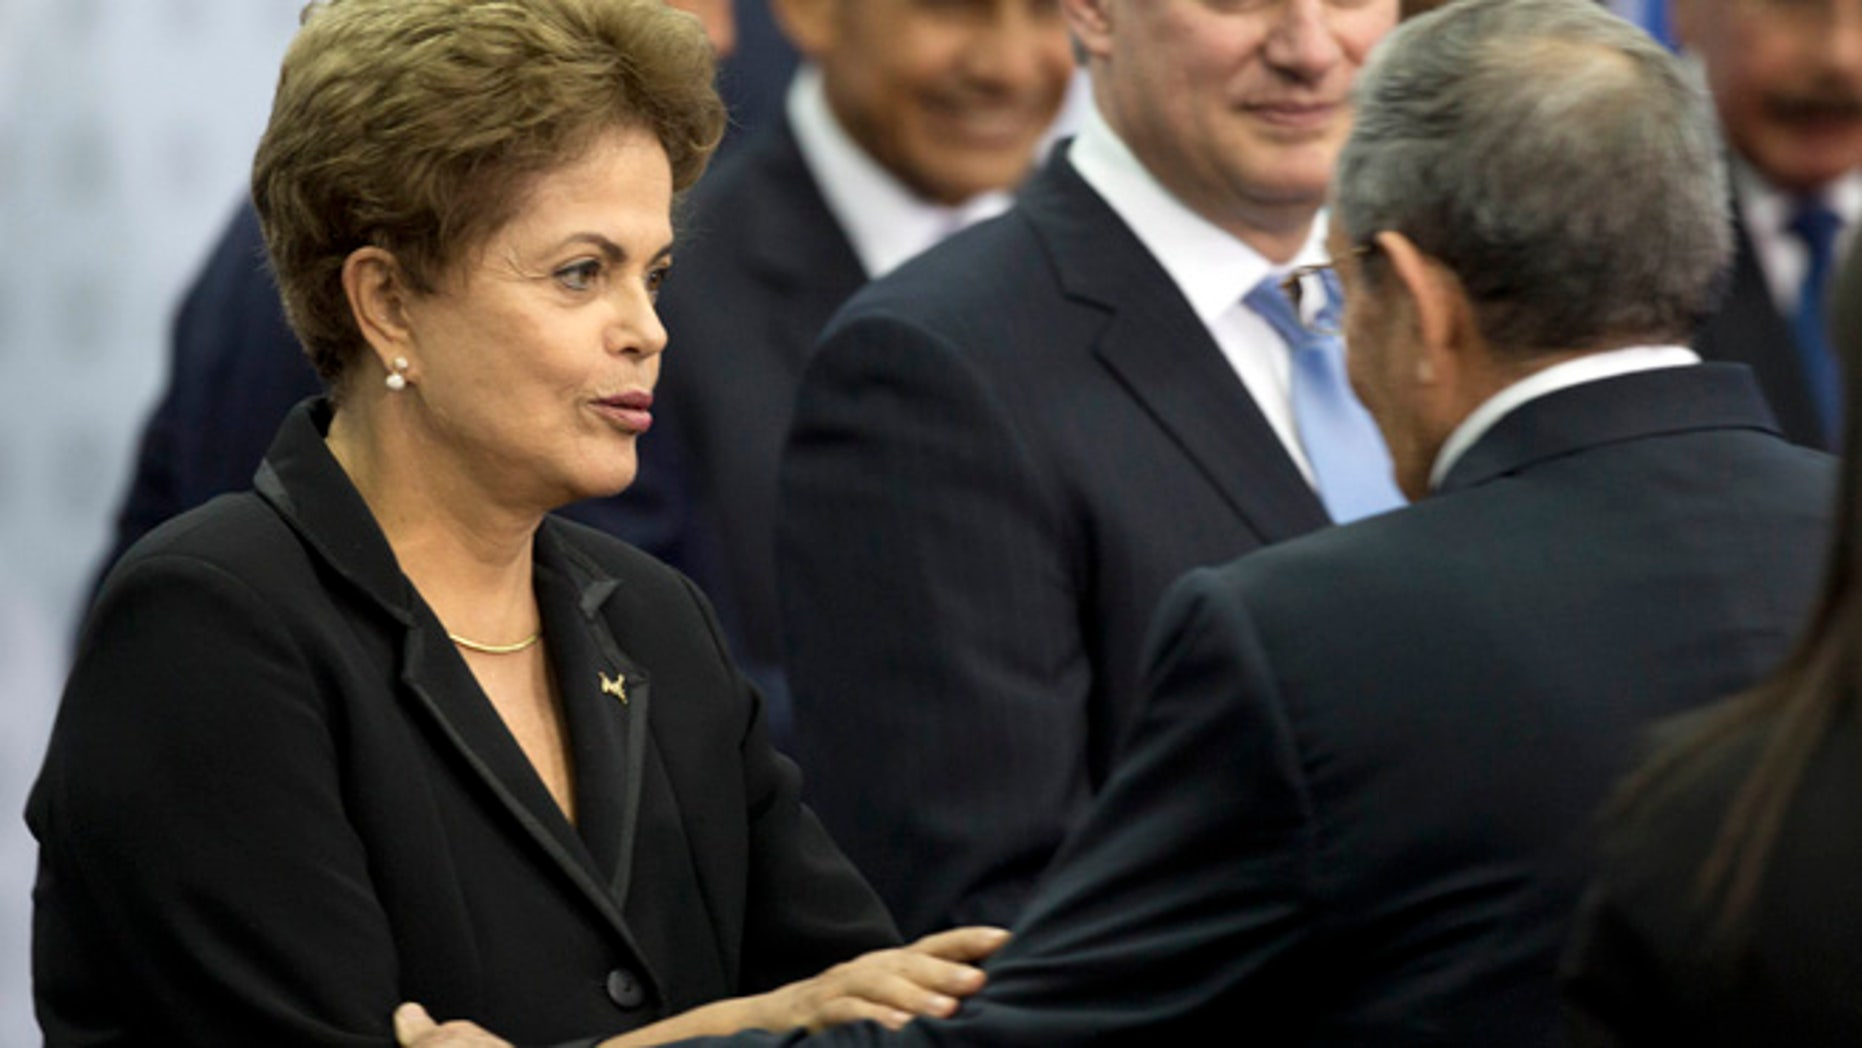 Apr. 11, 2015: Brazil's President Dilma Rousseff greets Cuba's President Raul Castro as they arrive for the oficial group photo of the VII Summit of the Americas in Panama City, Panama. (AP)